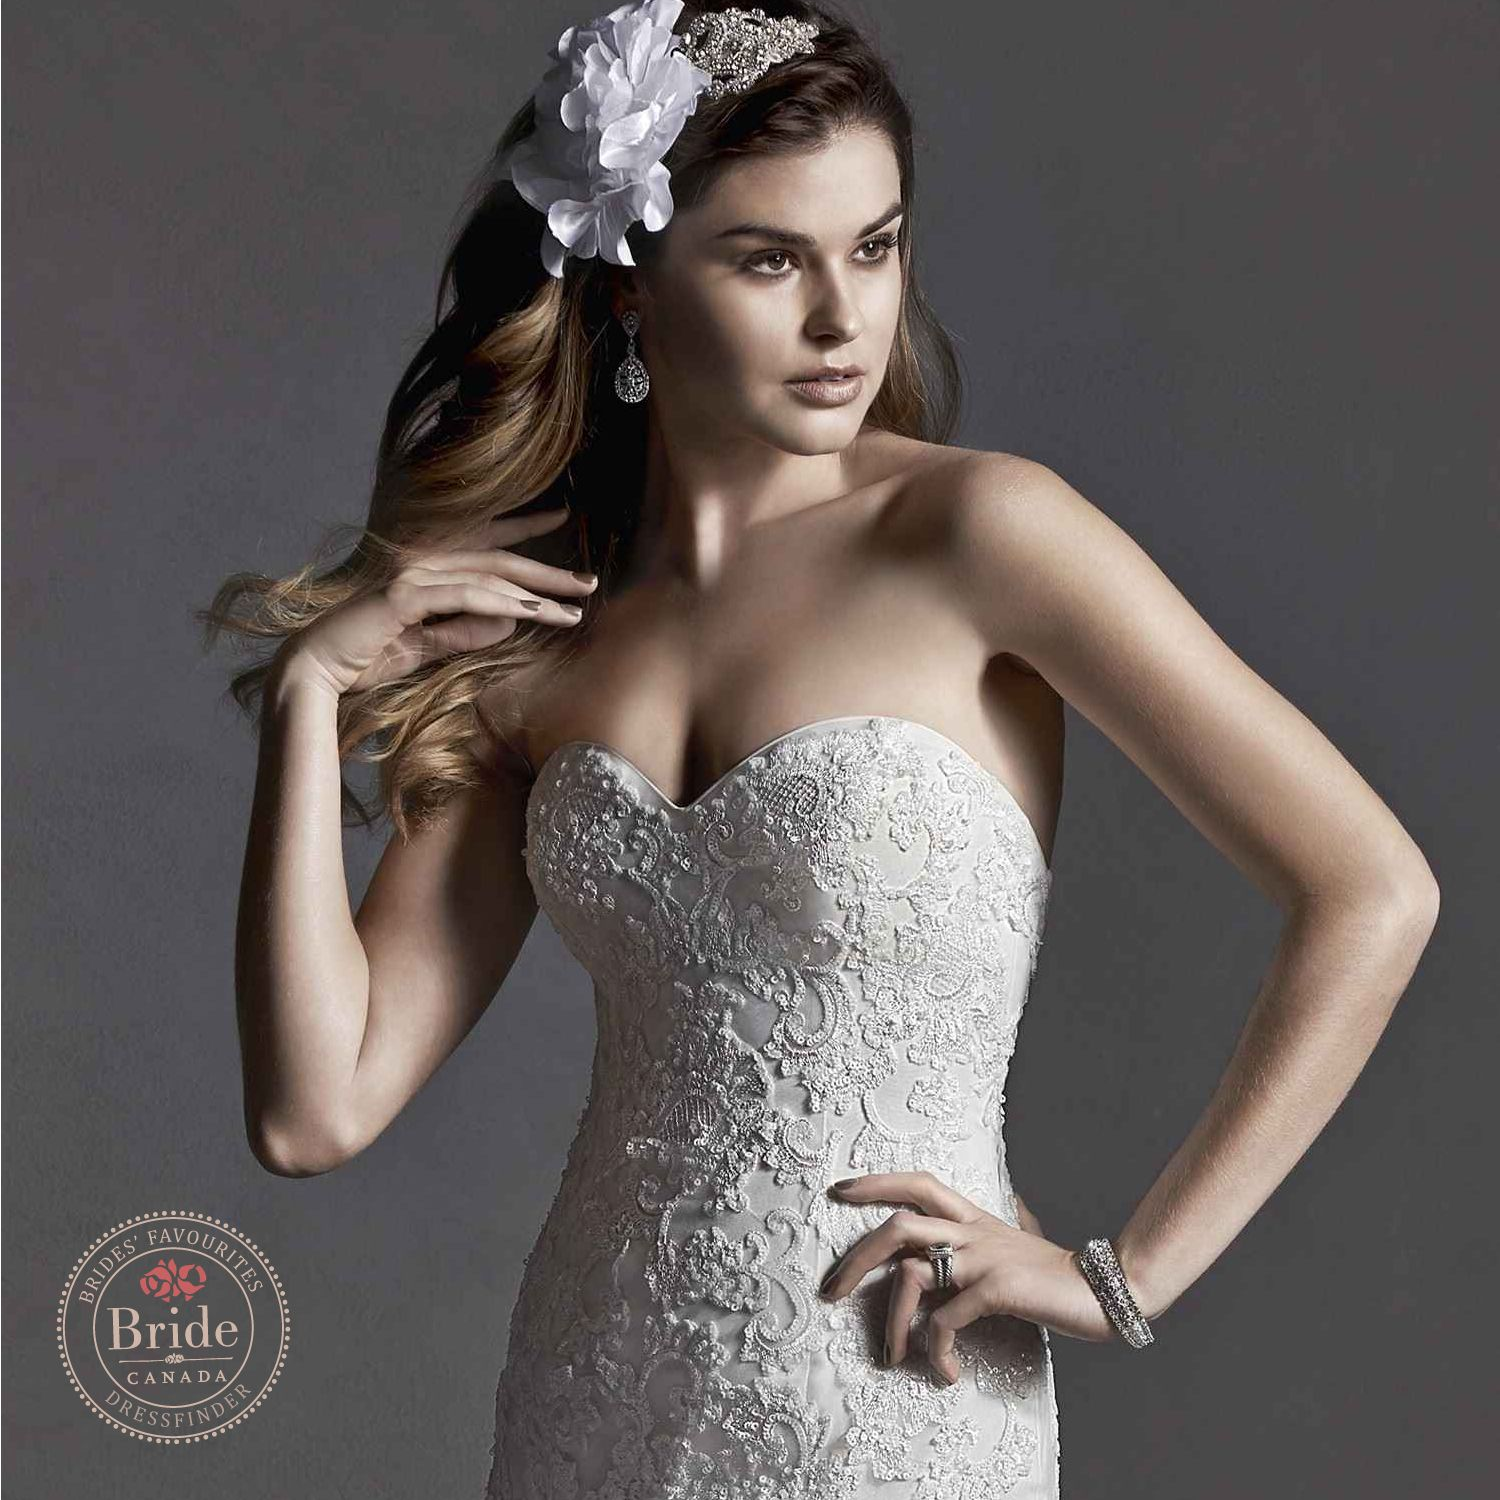 Marlow from sottero midgley collection as seen on dressfinder find marlow wedding dress by sottero midgley available in 62 boutiques in canada bridal debut gownhouse sherwood park main event ladies wear bridal ombrellifo Image collections